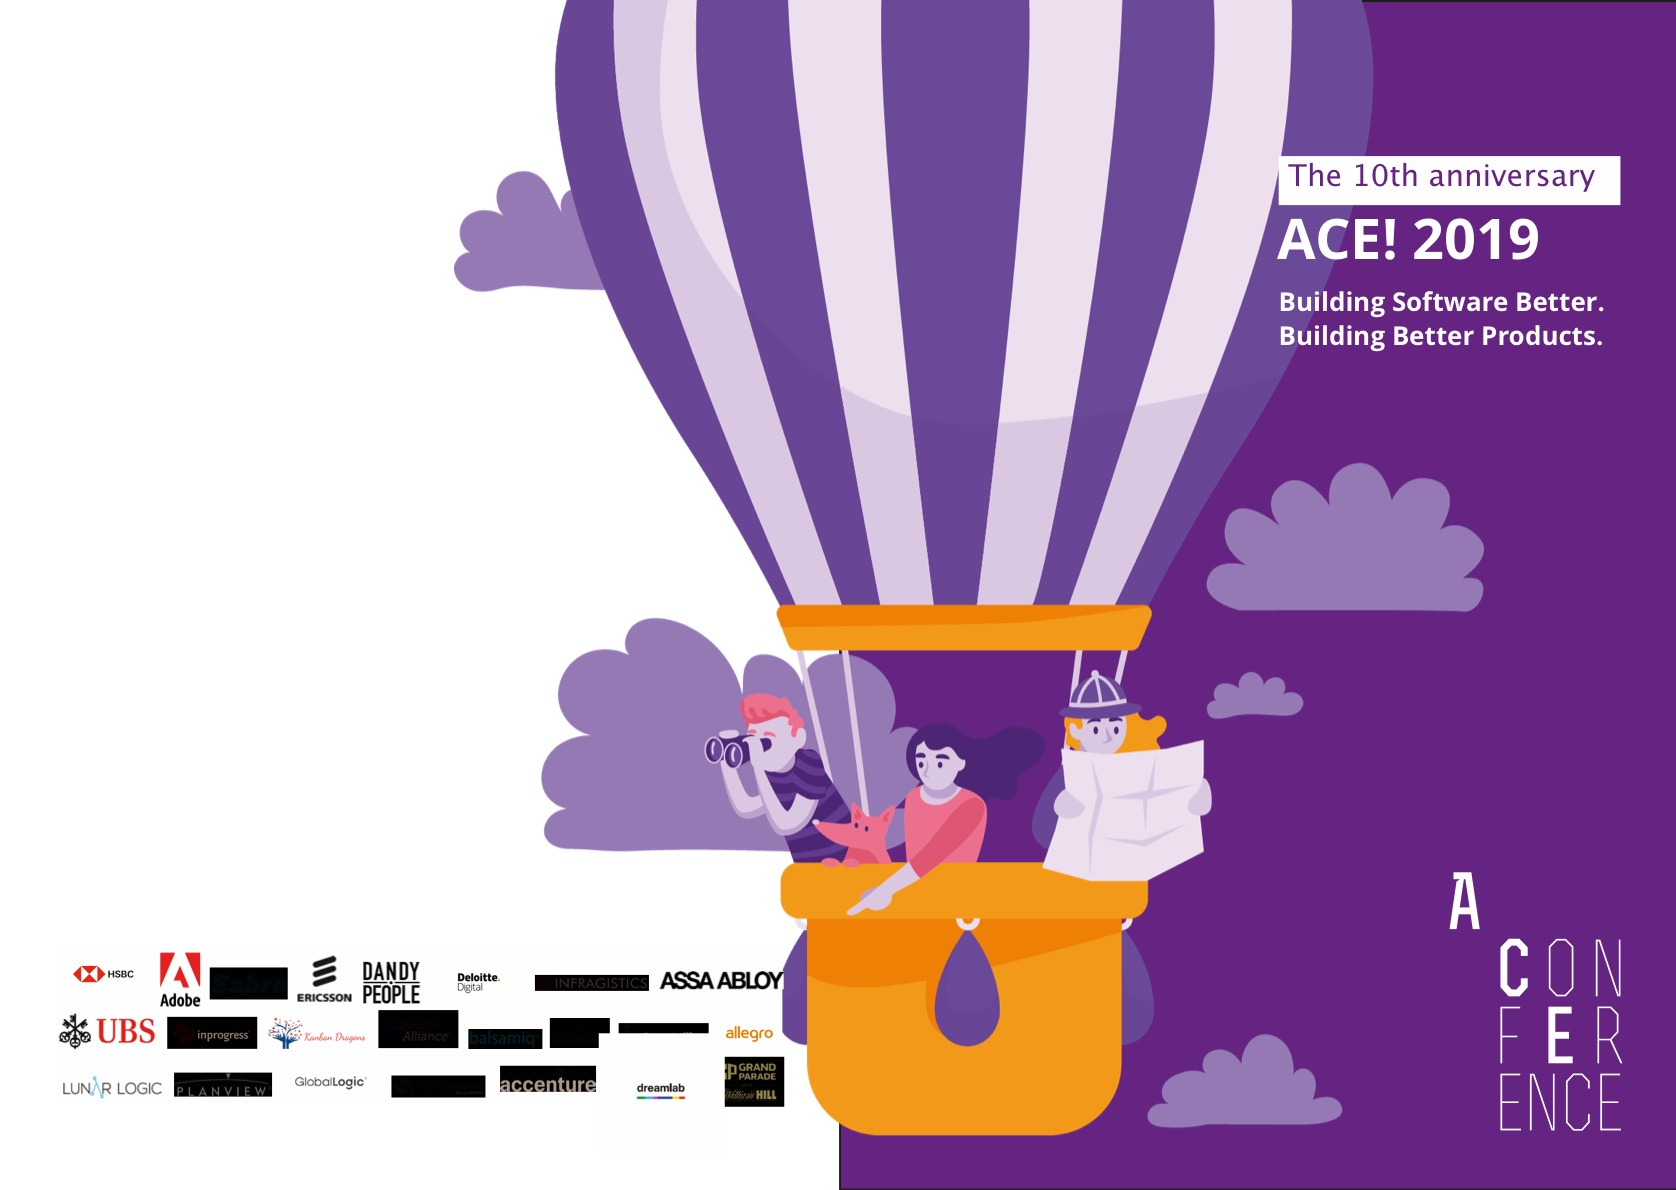 ACE Conference